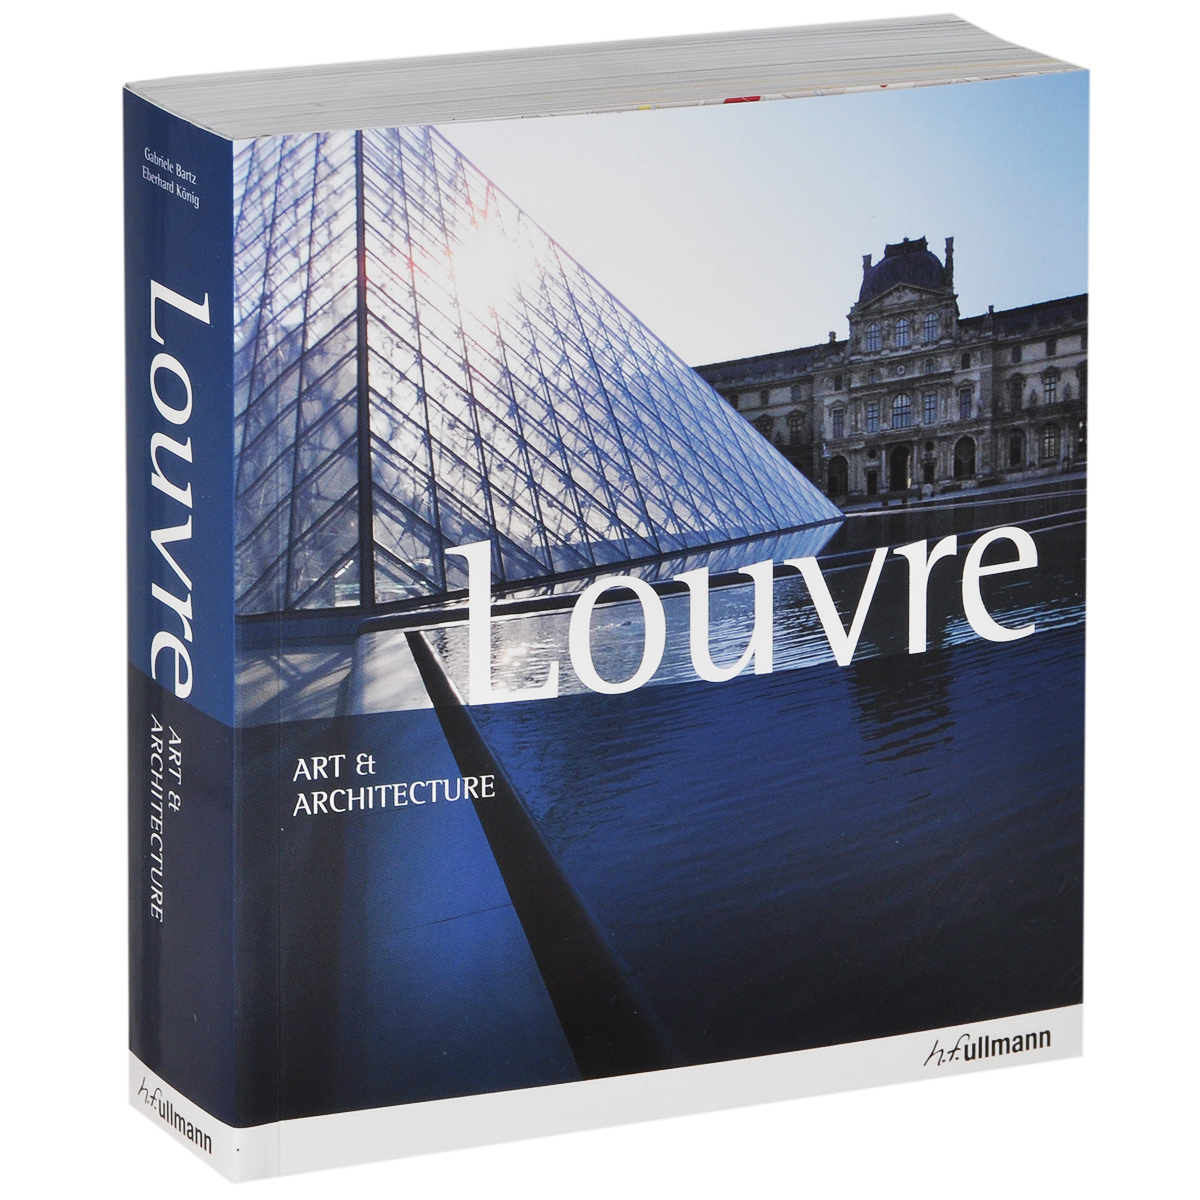 Art & Architecture Louvre the illustrated story of art